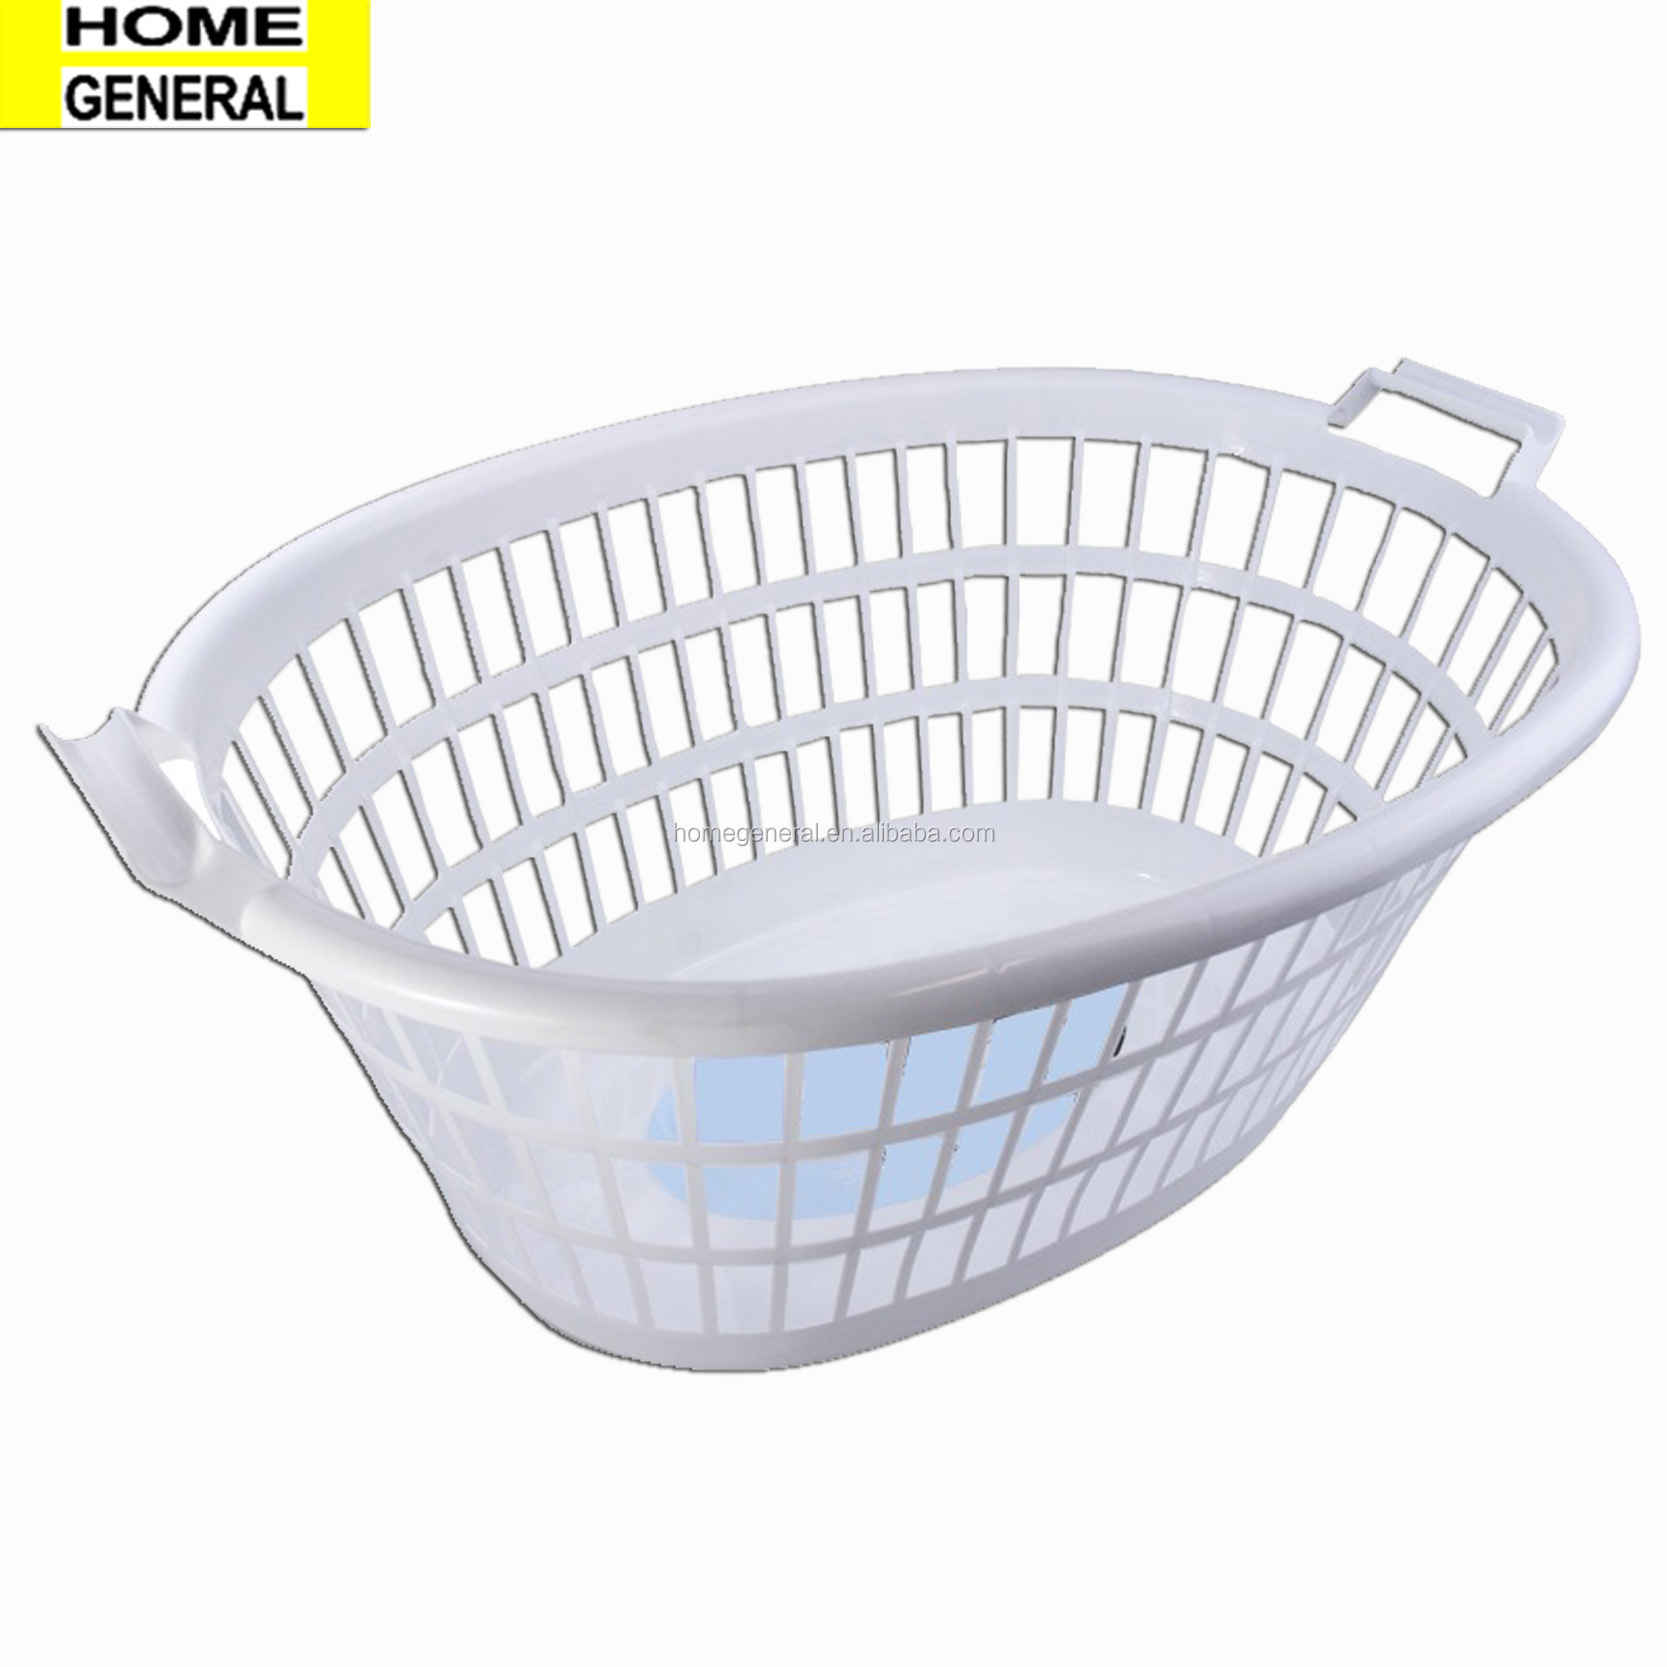 BASKET GENERAL OVAL LAUNDRY BASKET PLASTIC LAUNDRY BASKET